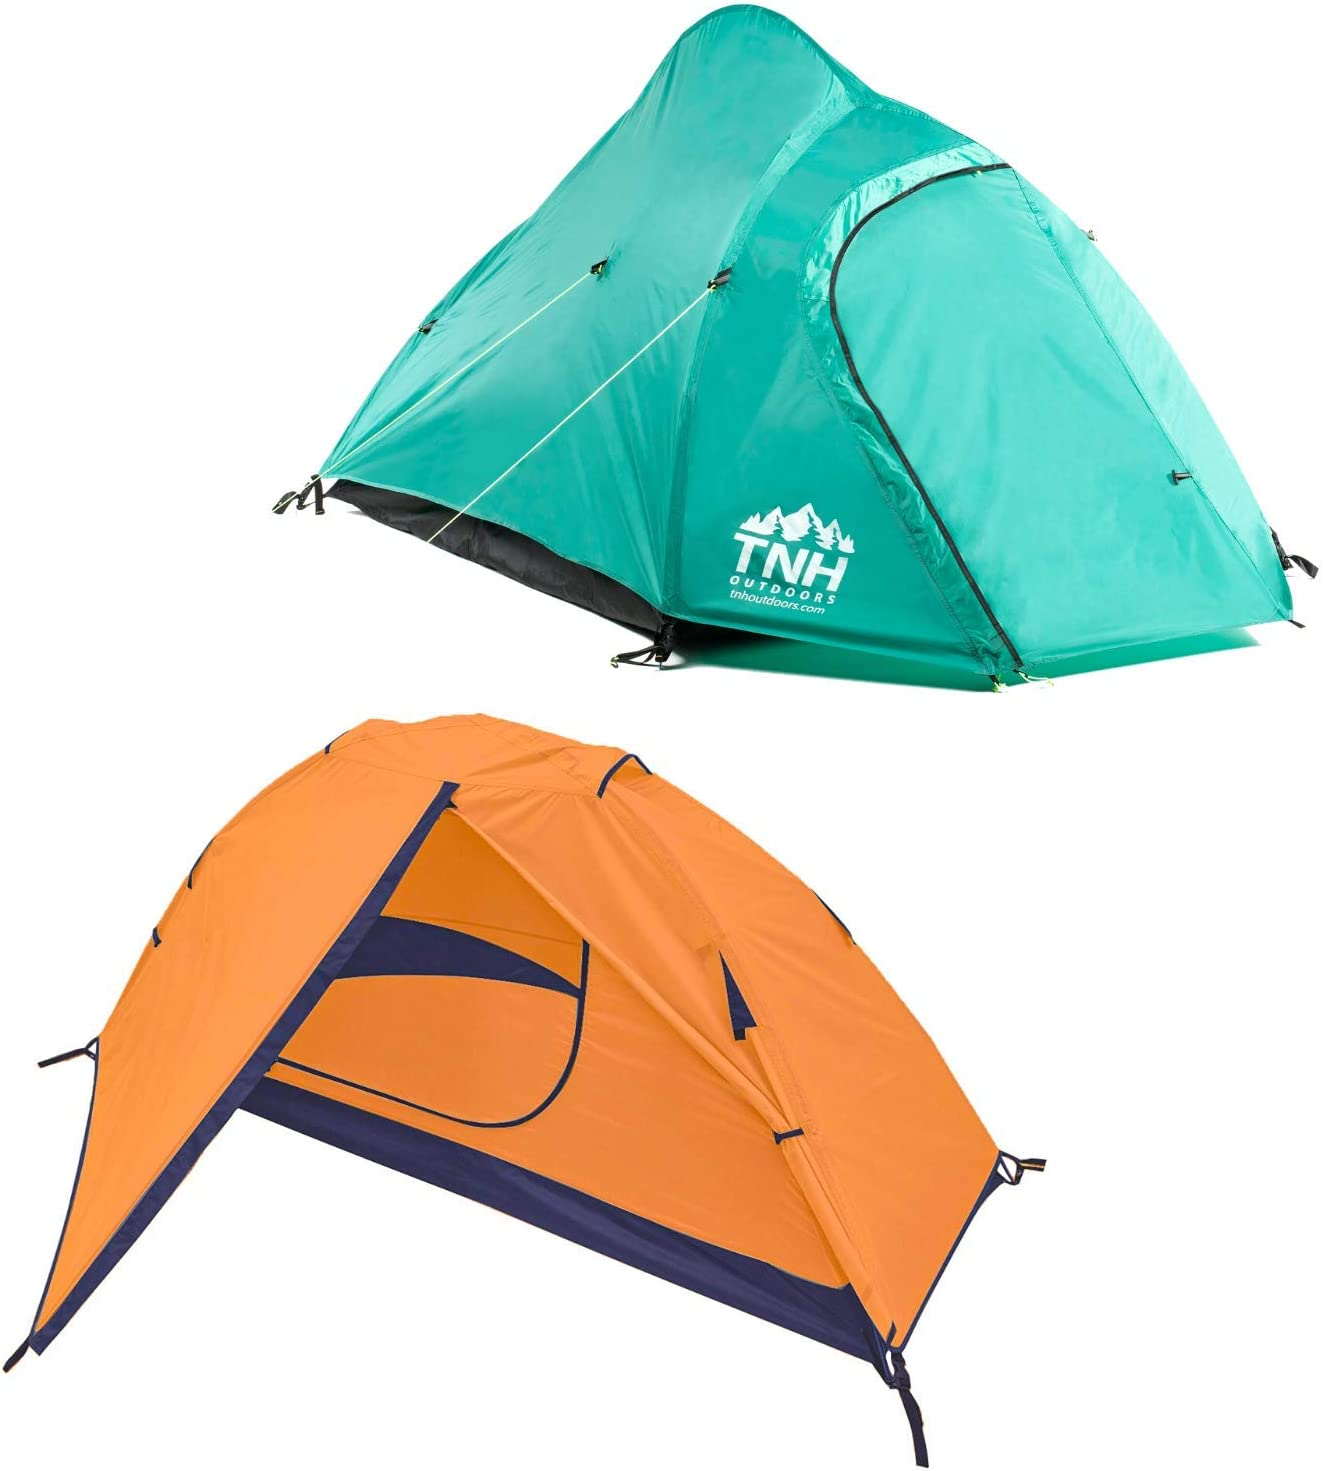 RAKAIA DESIGNS Camping & Backpacking Tent with Carry Bag and Stakes - Portable Lightweight Easy Setup Hiking Tent